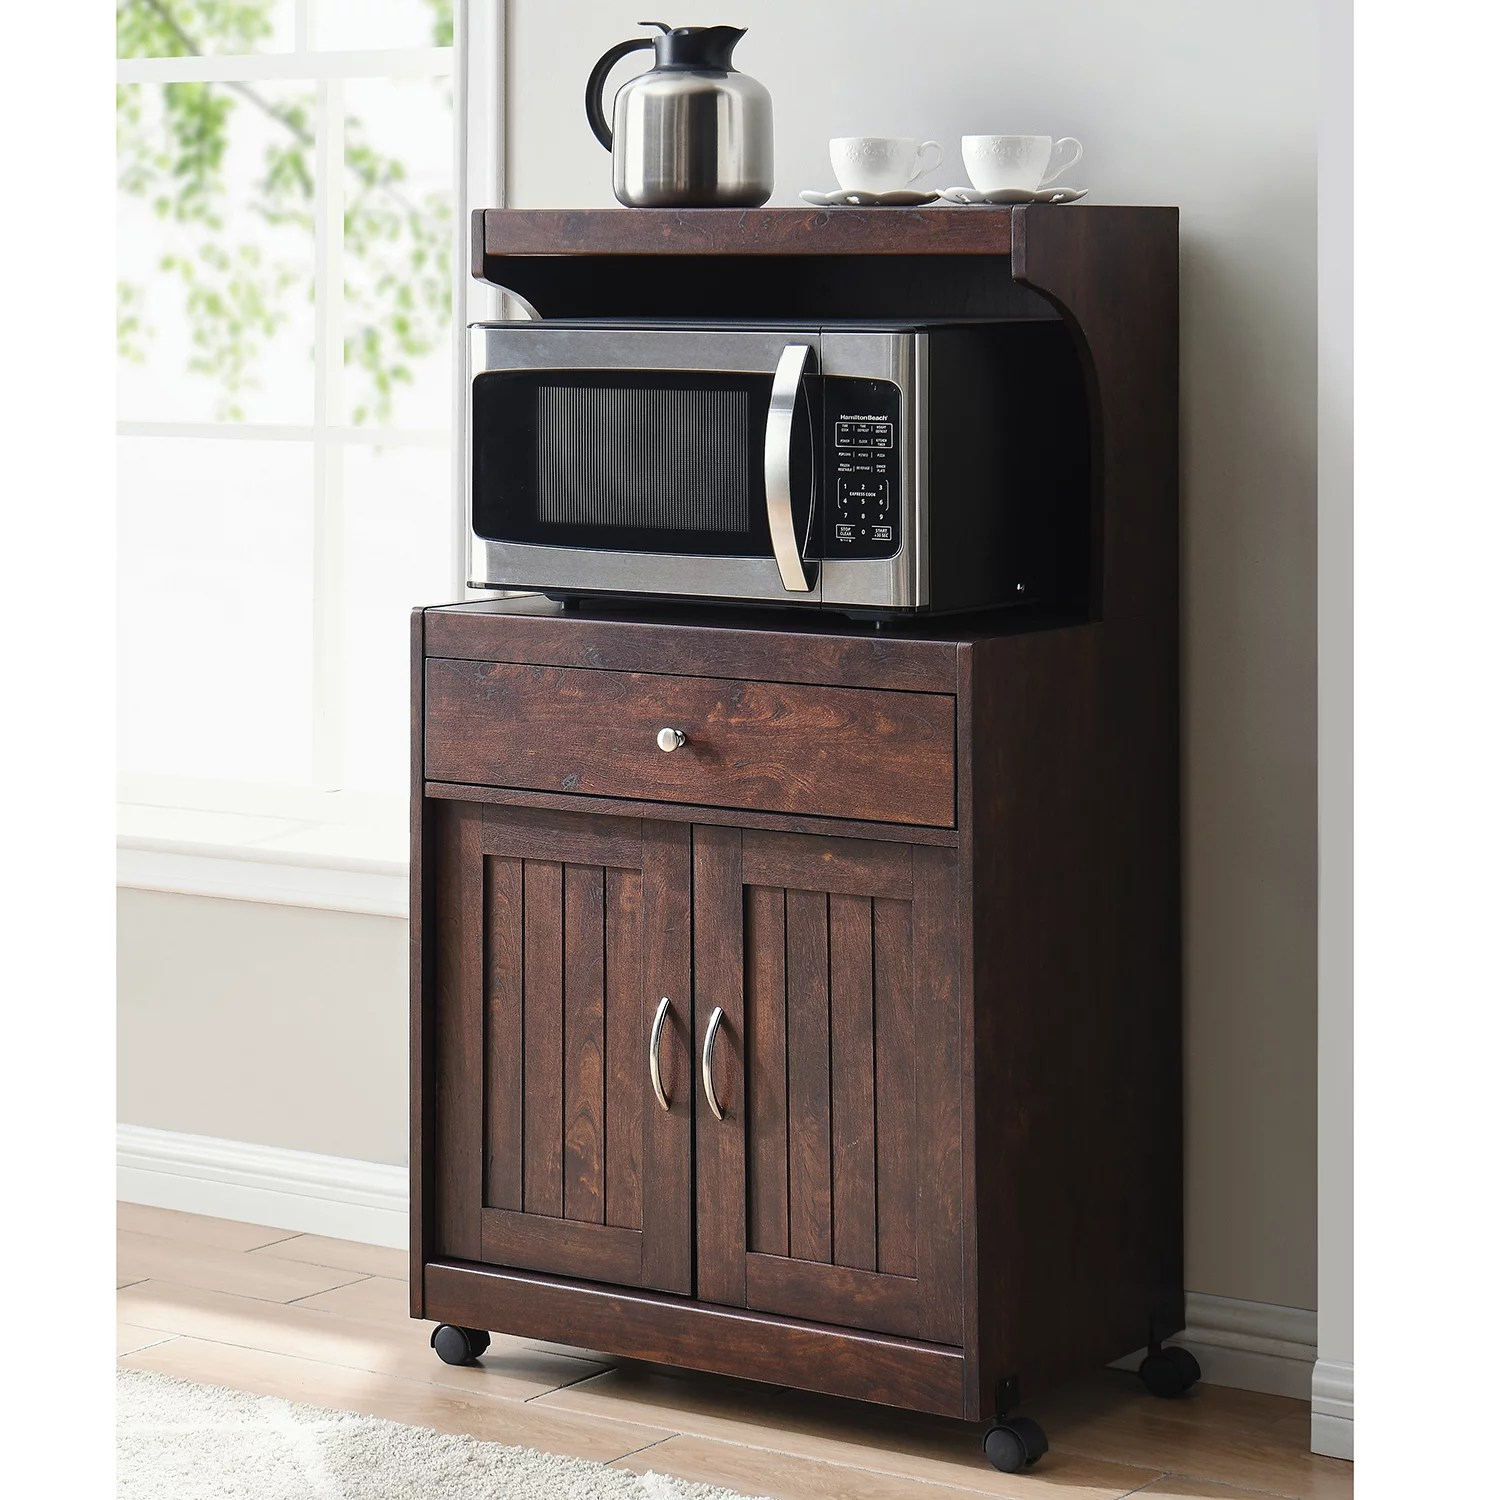 gramercy way mahogany microwave cart with double door cabinet 1 drawer and top shelf walmart com